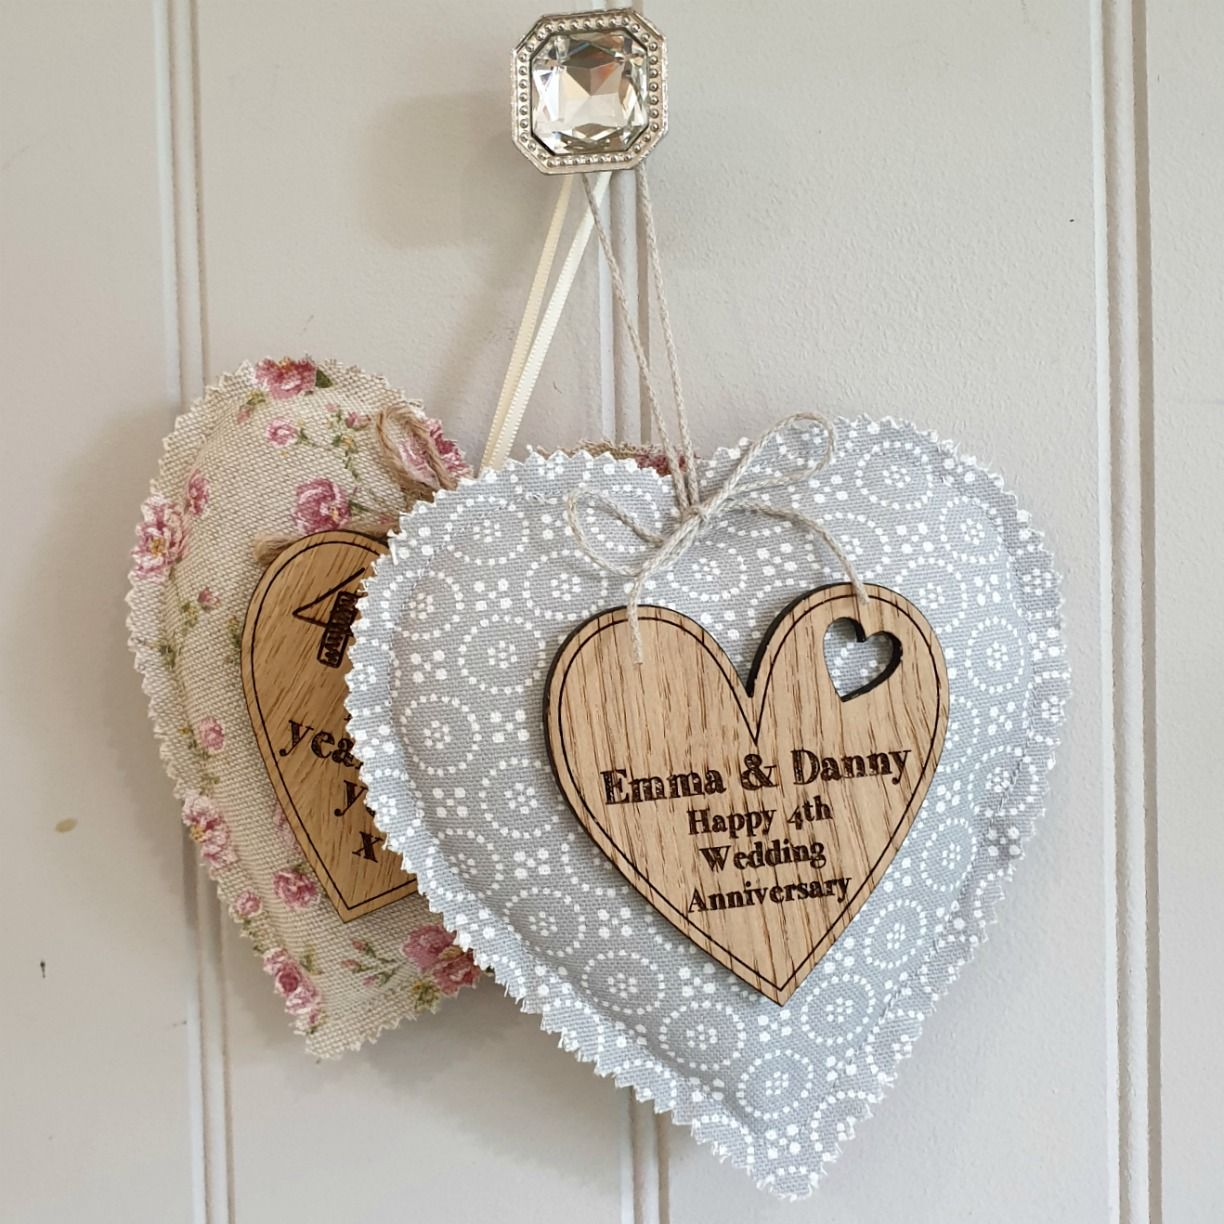 12th Wedding Anniversary Fabric Heart With Oak Message Heart